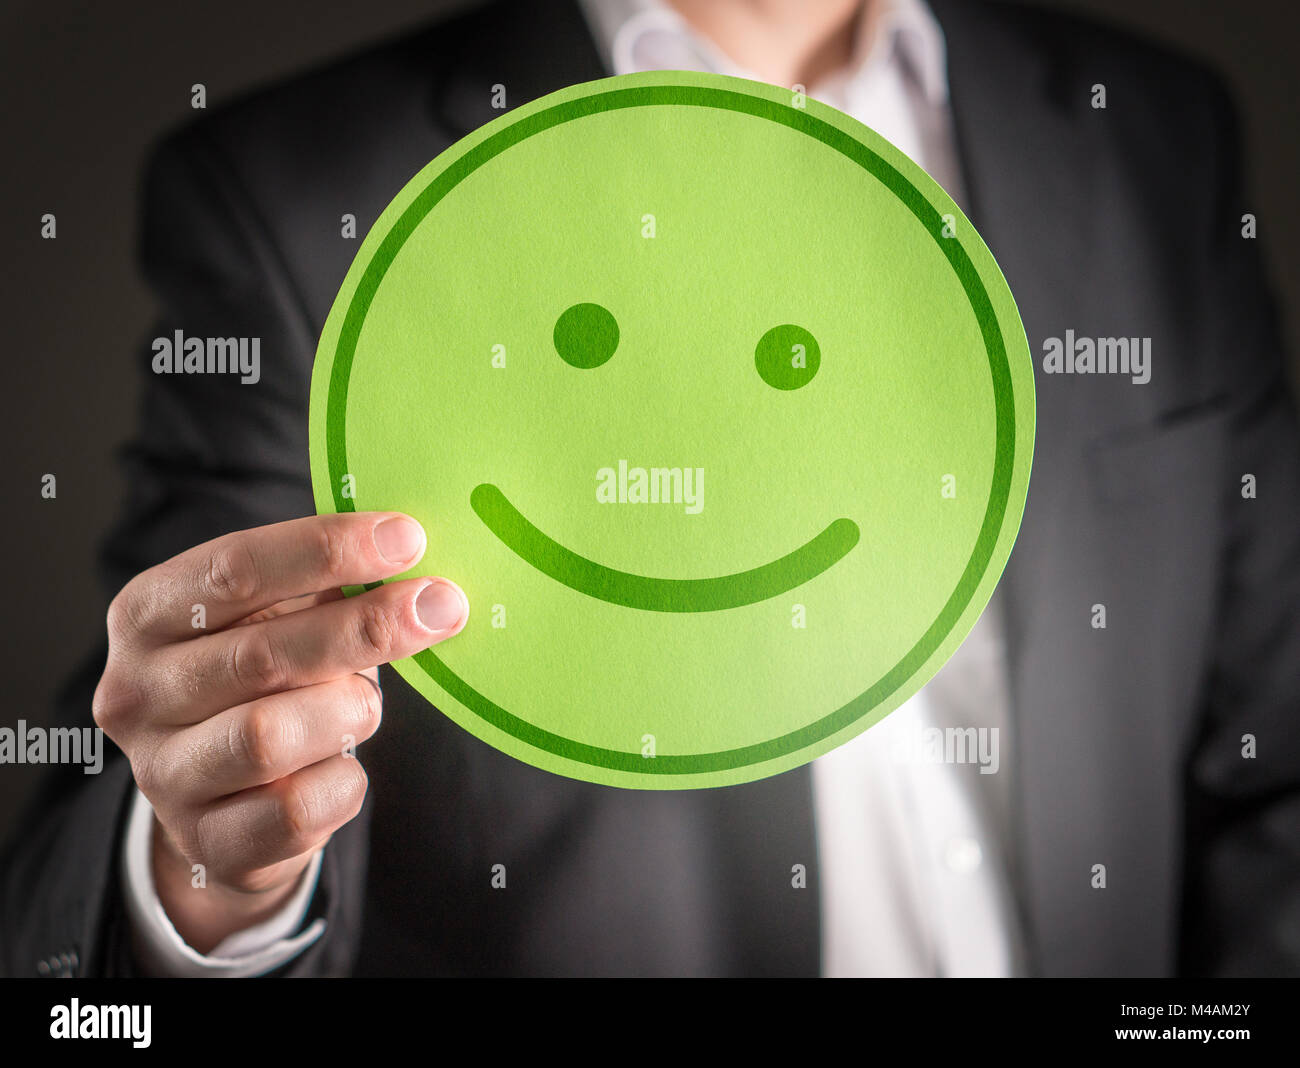 Business man with happy cardboard smiley face emoticon. Customer satisfaction or successful business concept. - Stock Image